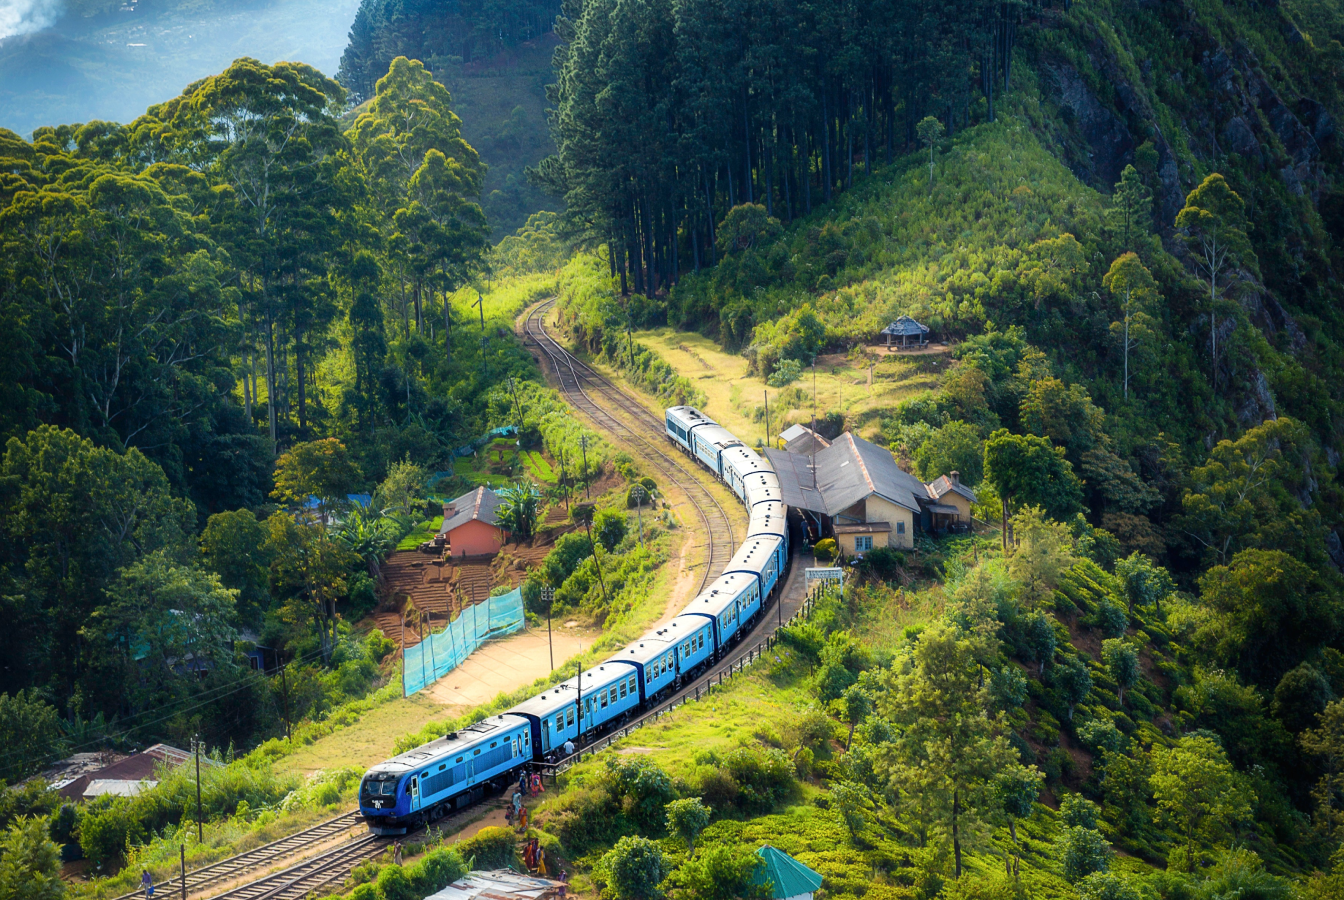 A train stopped at a station near a forest